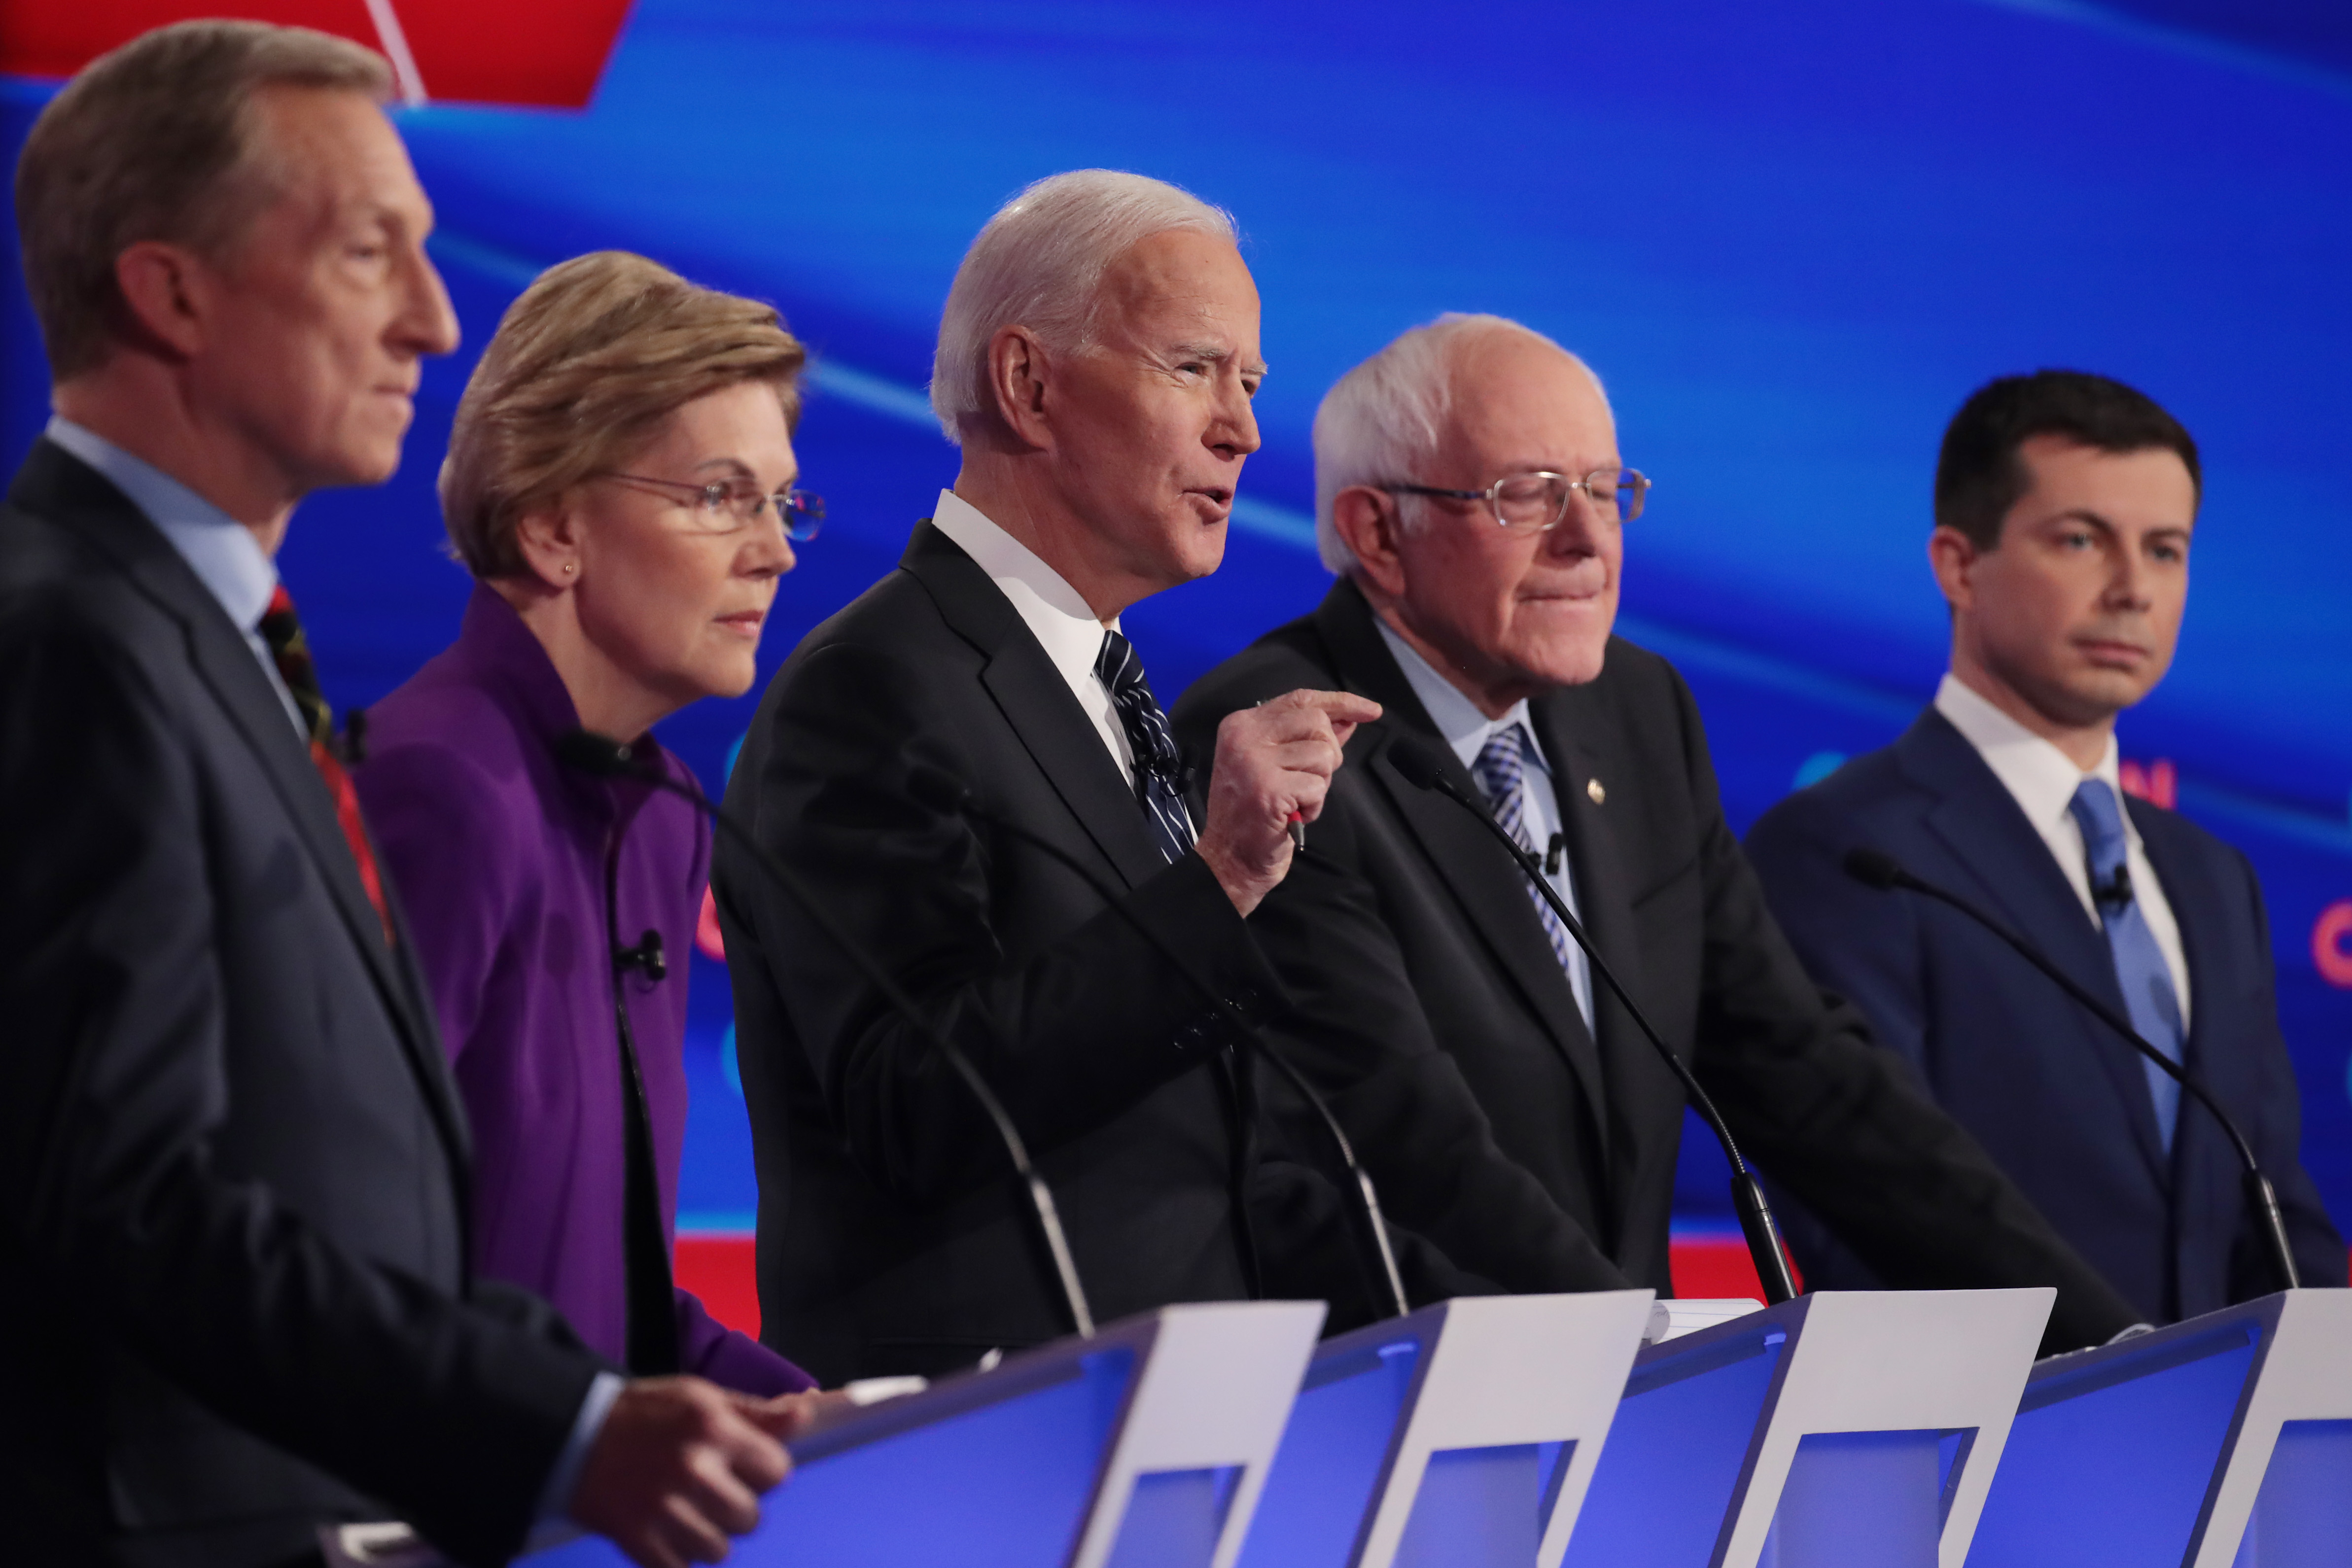 DES MOINES, IOWA - JANUARY 14: Tom Steyer (L), Sen. Elizabeth Warren (D-MA), Sen. Bernie Sanders (I-VT) and former South Bend, Indiana Mayor Pete Buttigieg (R) listen as former Vice President Joe Biden (C) speaks during the Democratic presidential primary debate at Drake University on January 14, 2020 in Des Moines, Iowa. Six candidates out of the field qualified for the first Democratic presidential primary debate of 2020, hosted by CNN and the Des Moines Register. (Photo by Scott Olson/Getty Images)